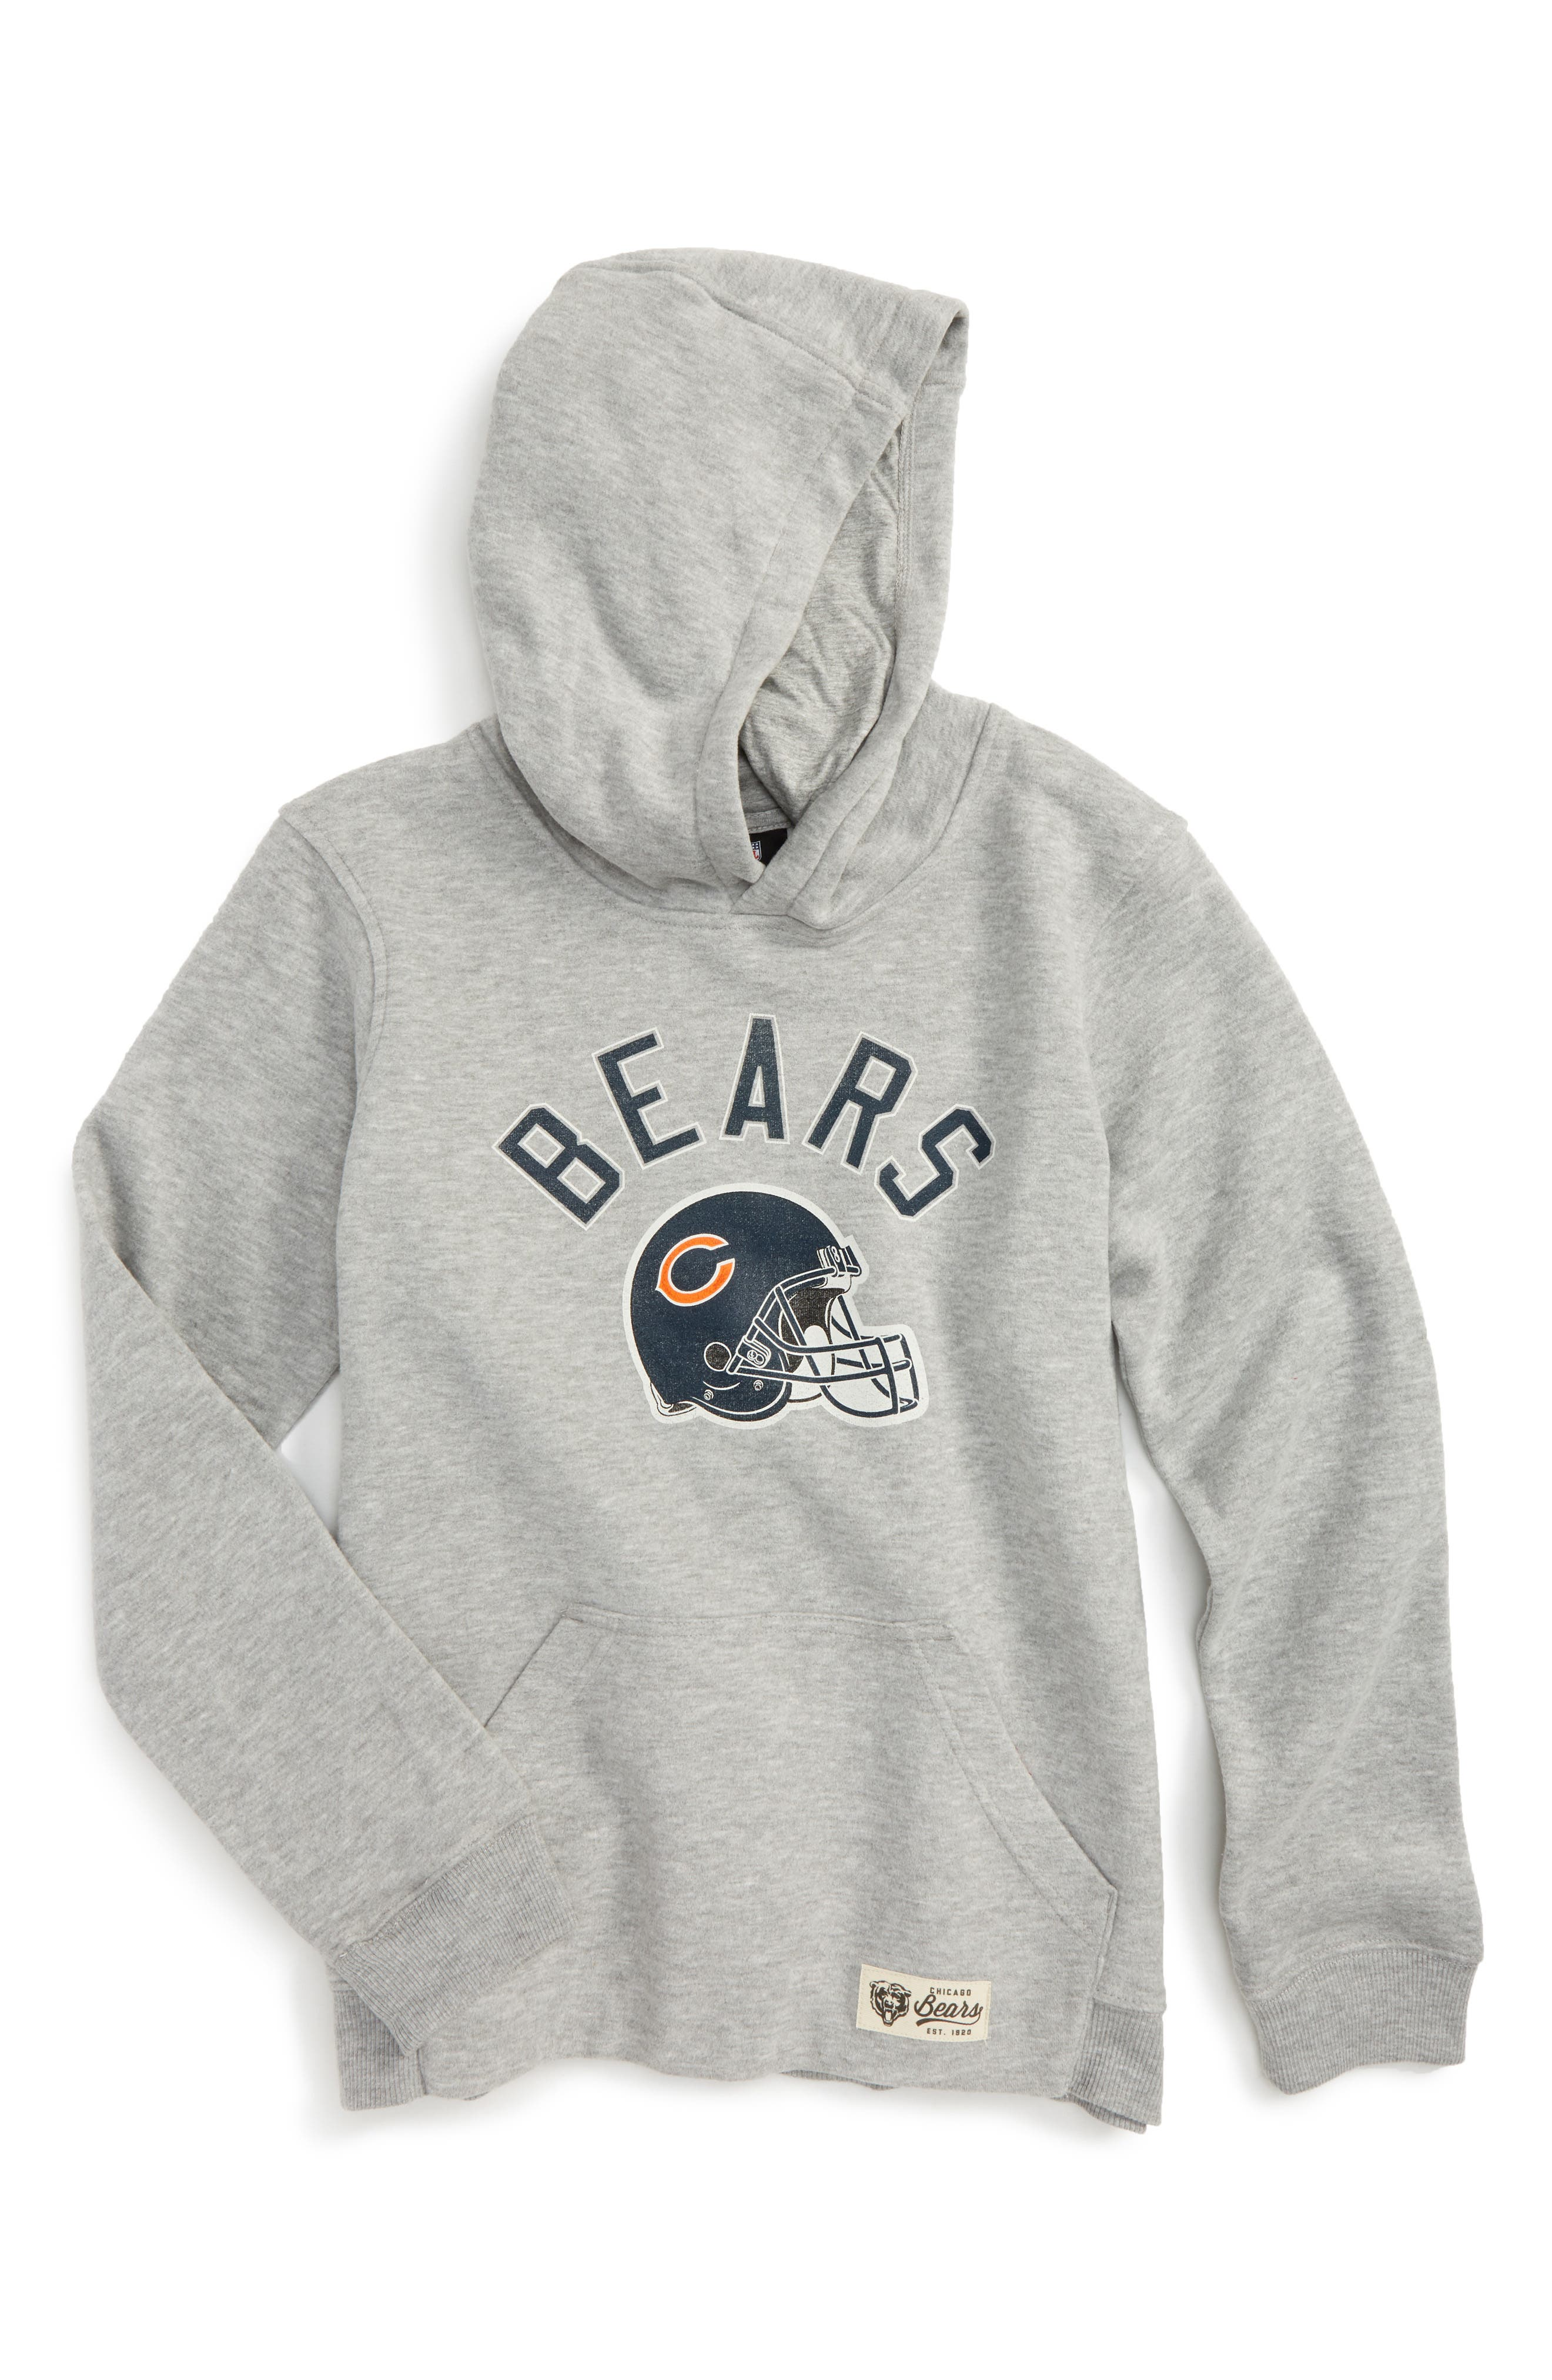 NFL Chicago Bears Pullover Hoodie,                         Main,                         color, 020